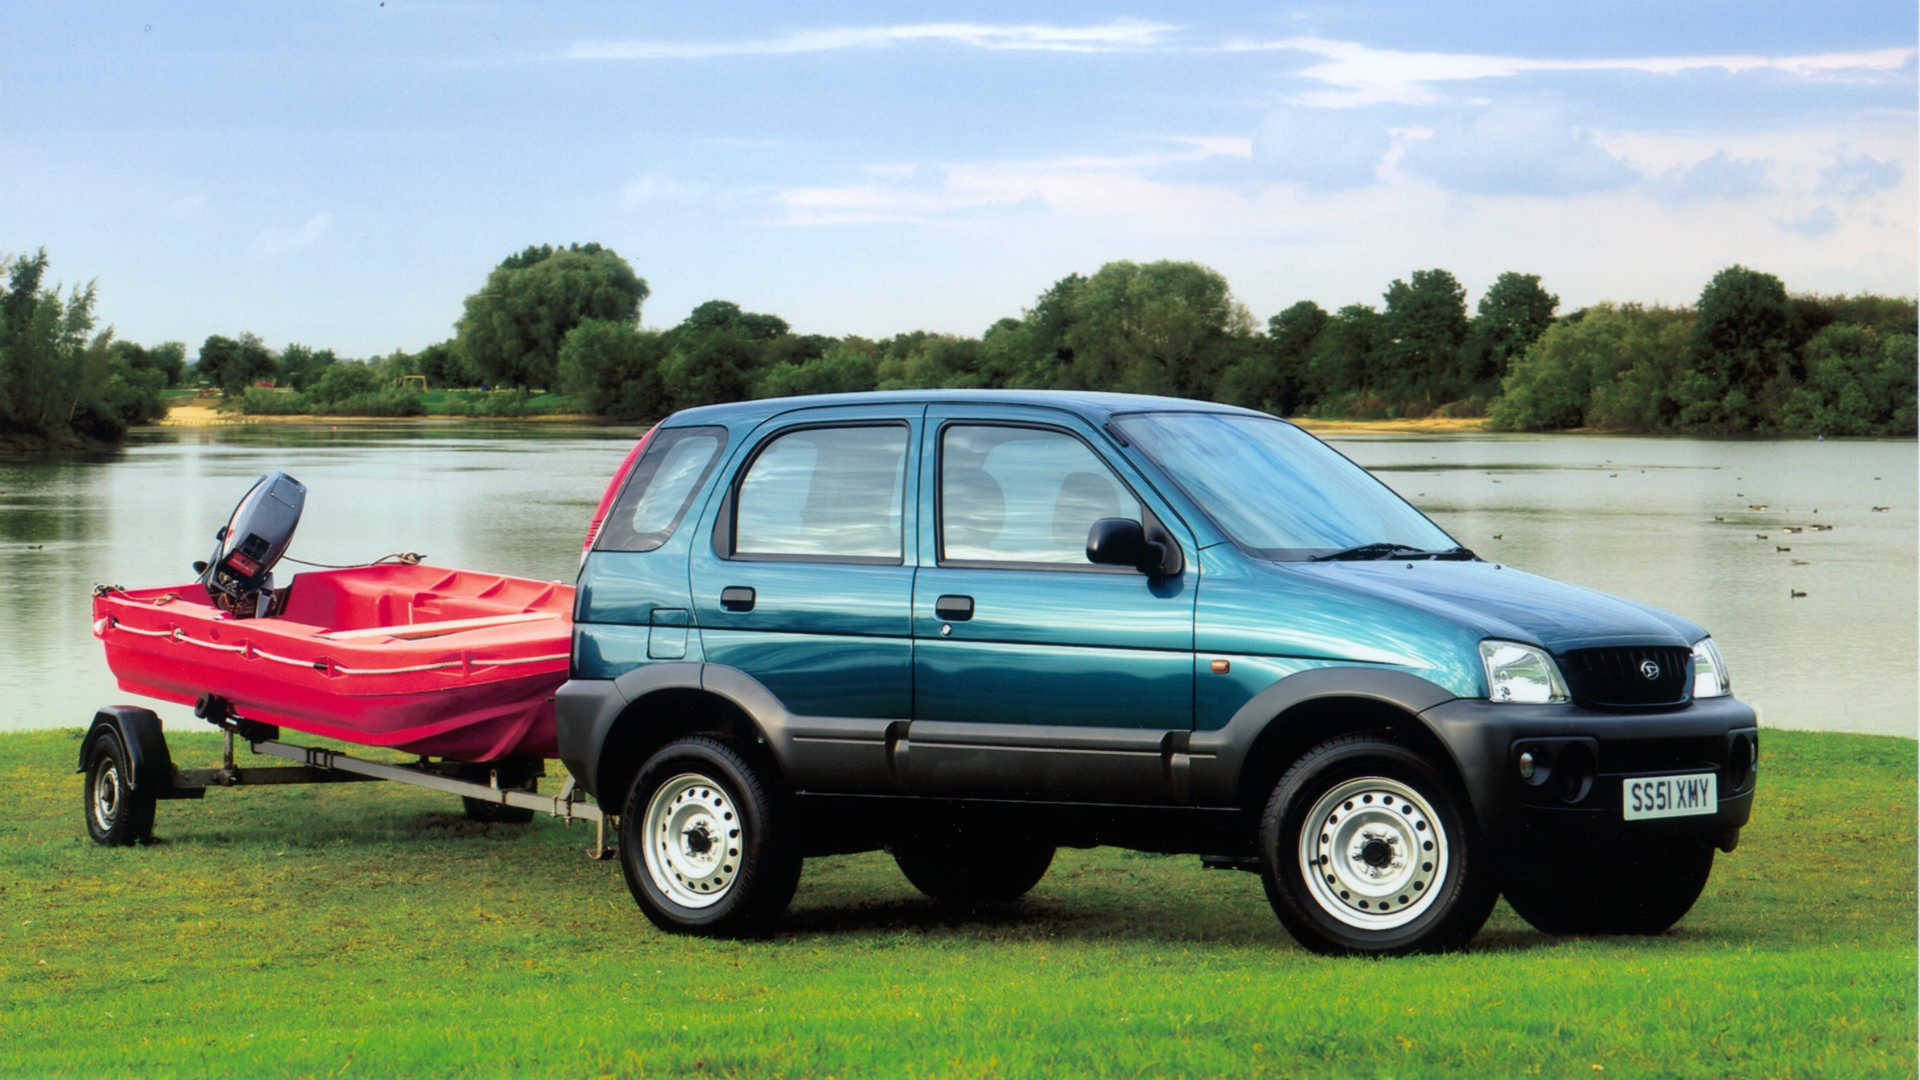 Daihatsu Terios towing a trailer